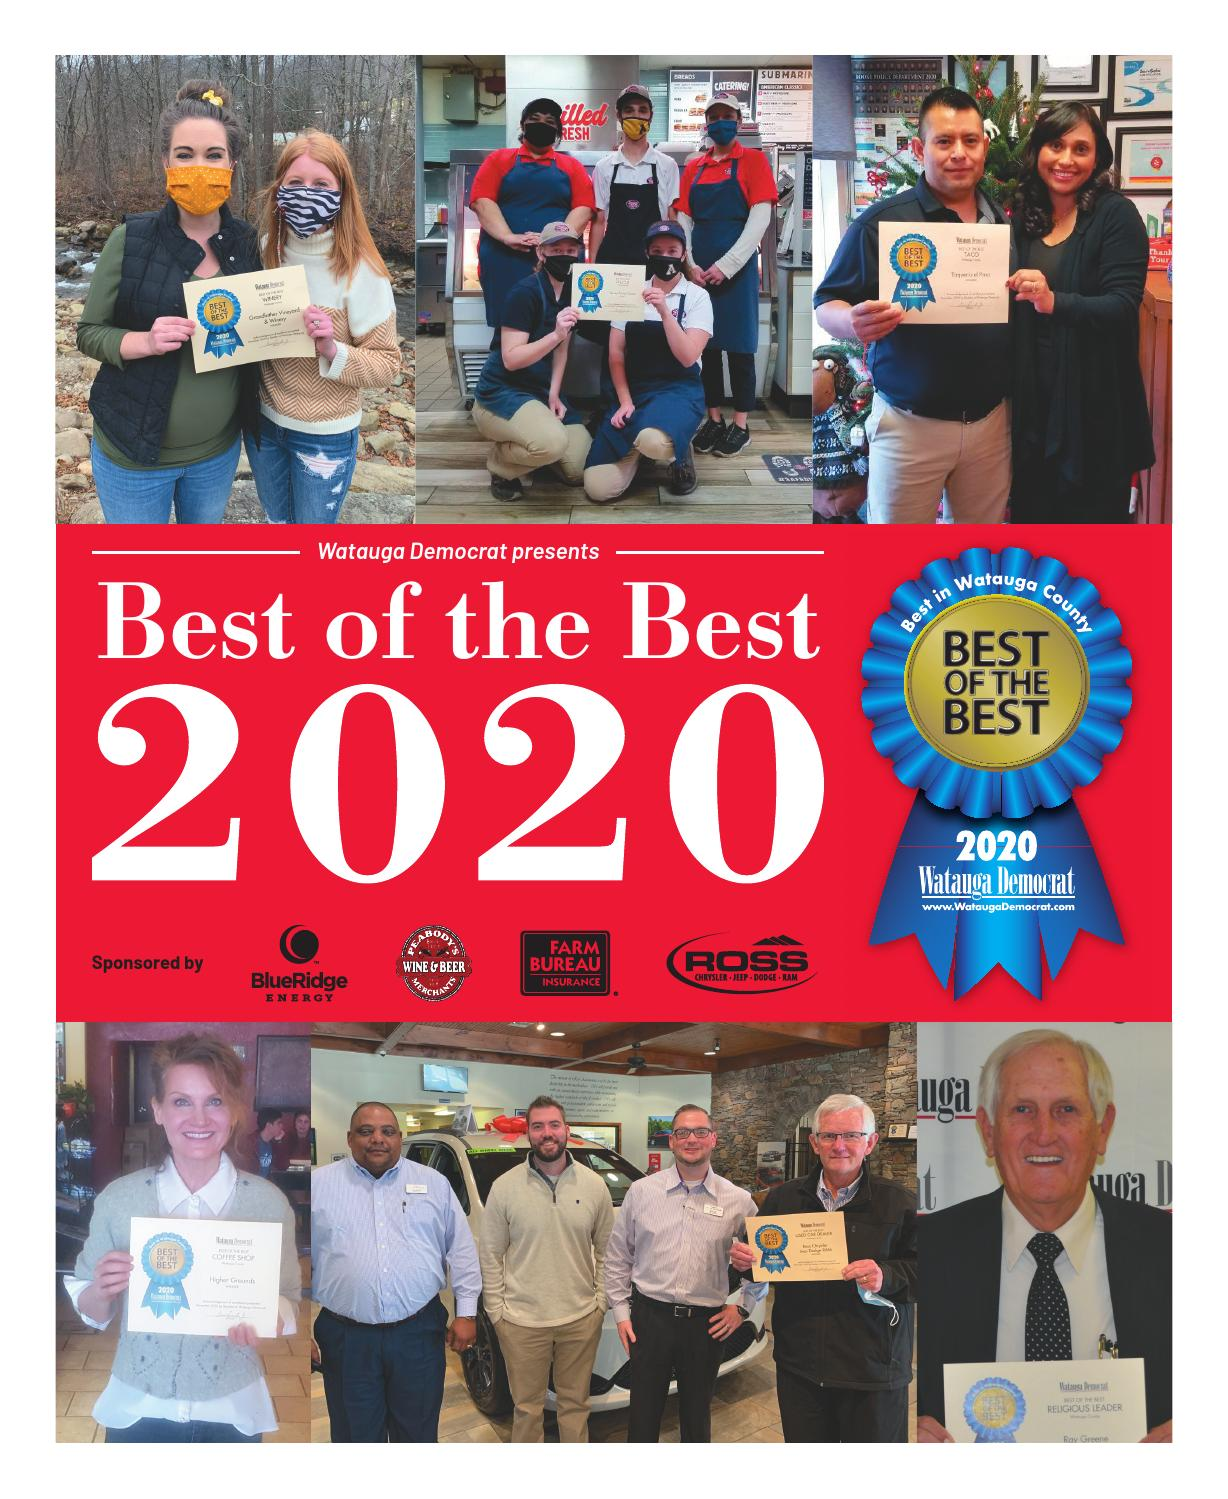 Christmas Trees 2021 Watauga Democrat Watauga County Best Of The Best 2020 By Mountain Times Publications Issuu